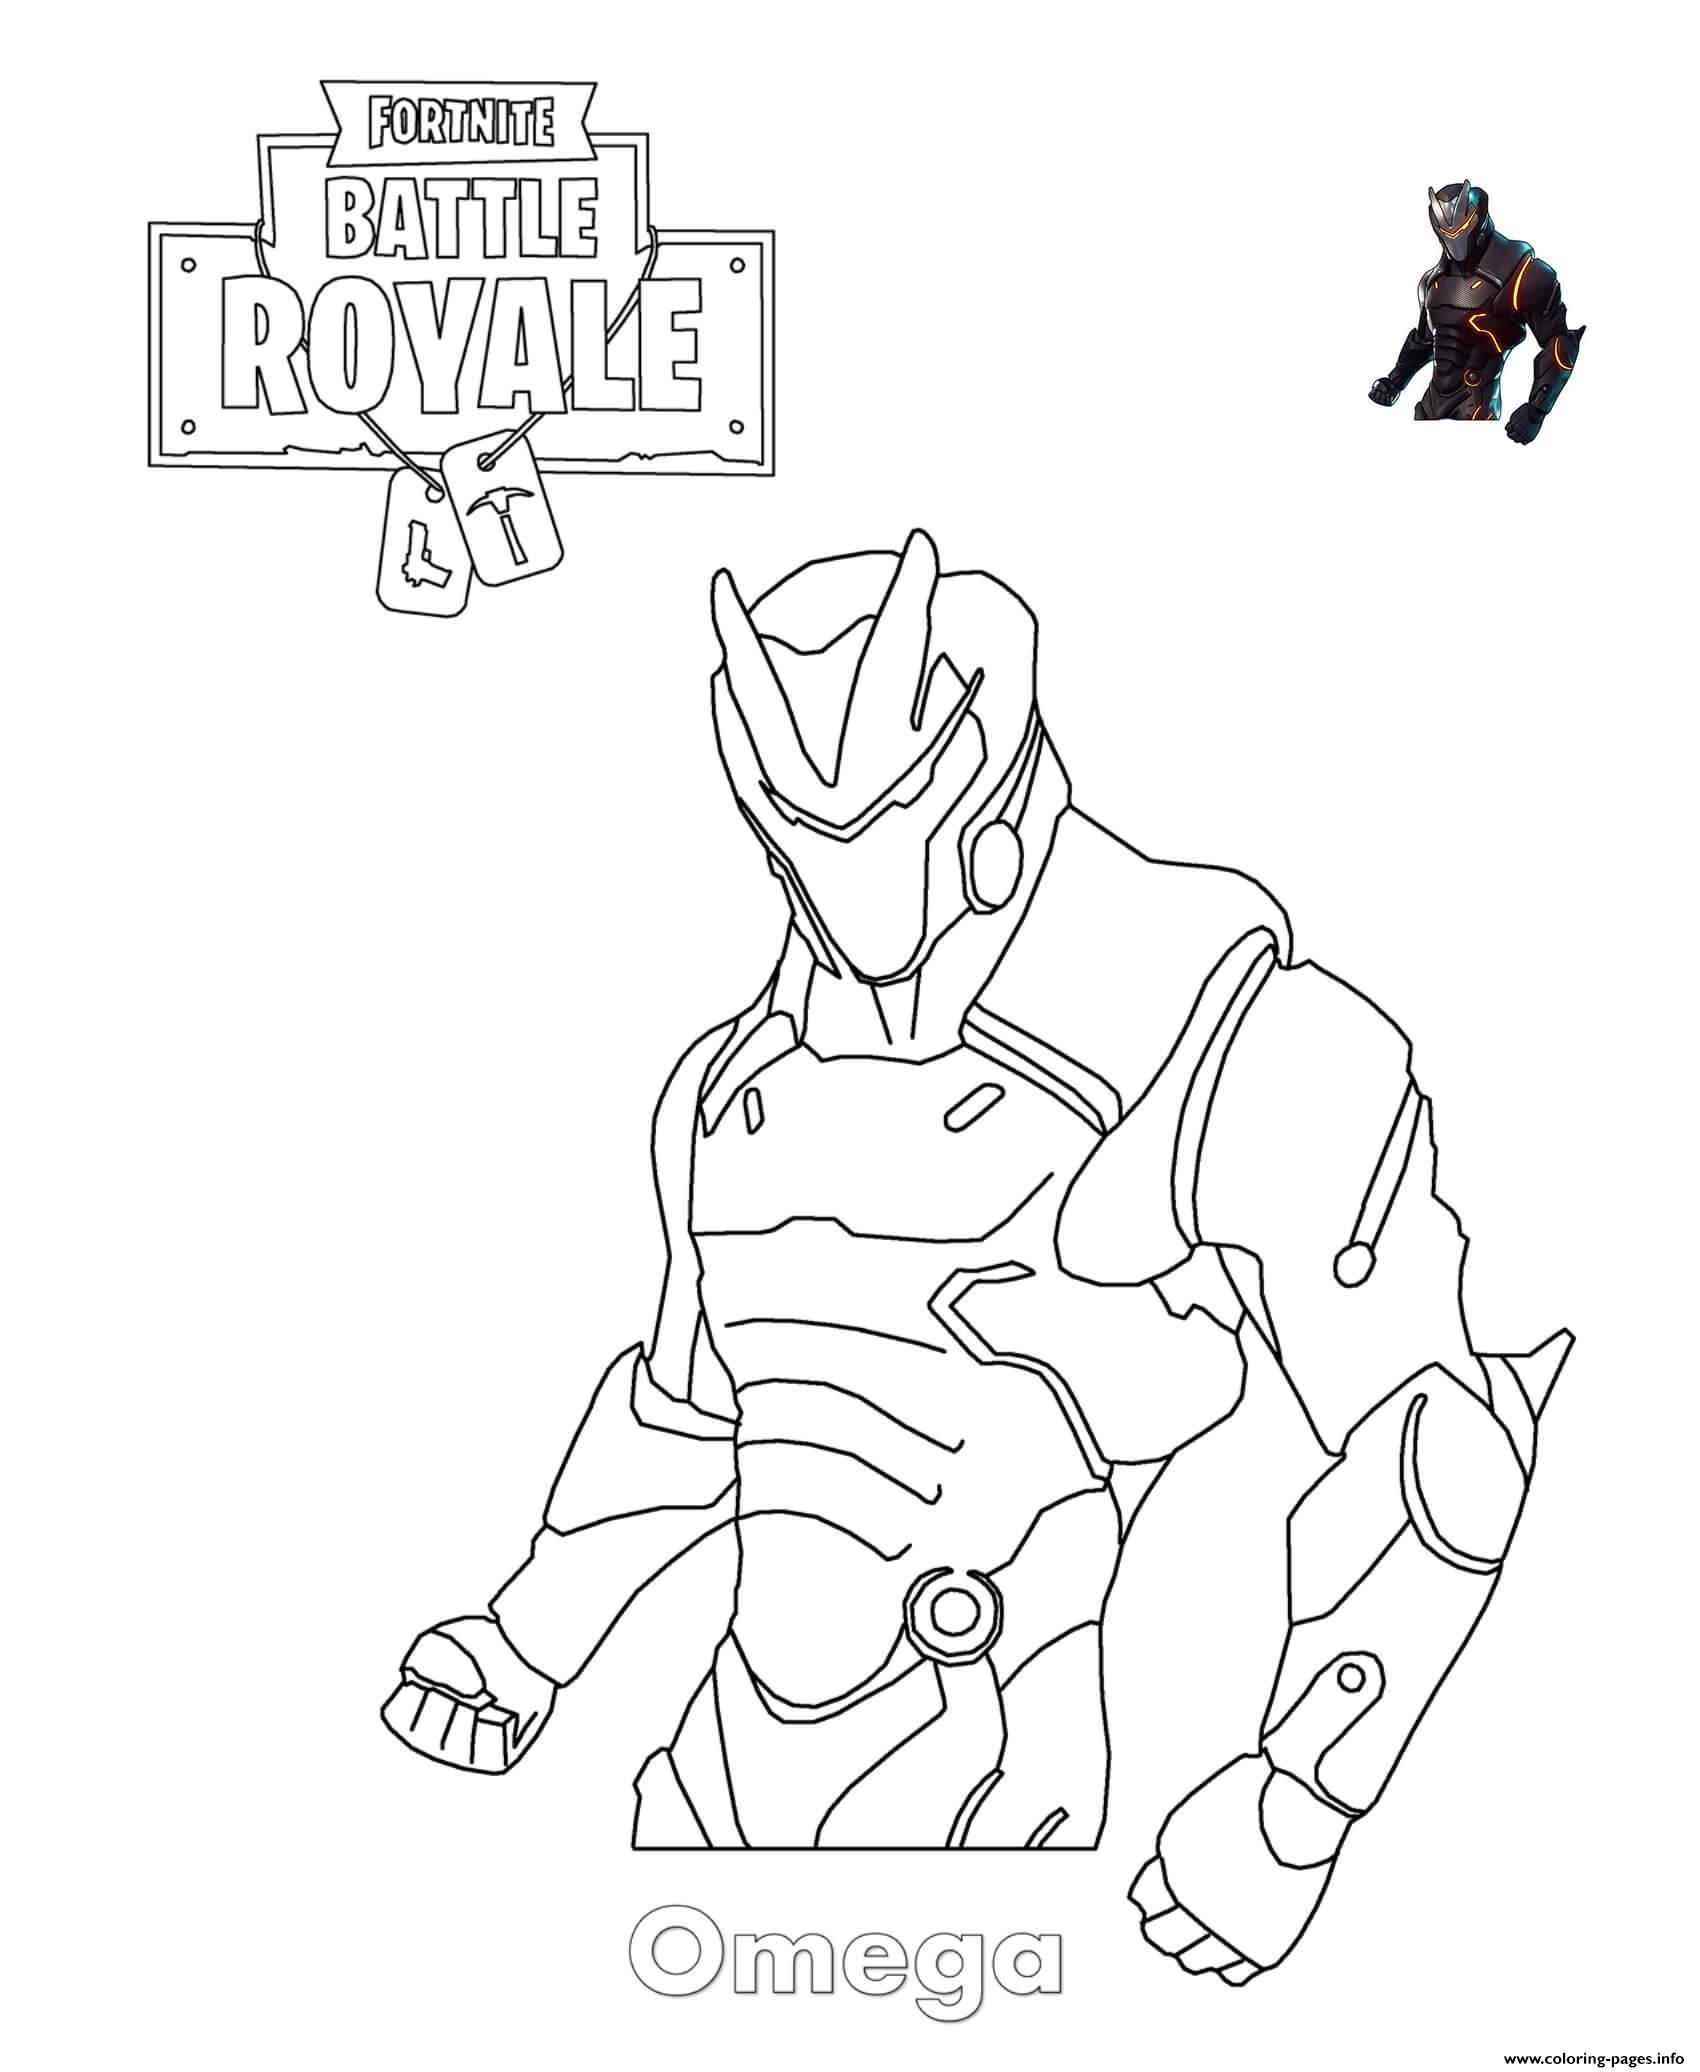 Omega Fortnite Coloring Pages Printable